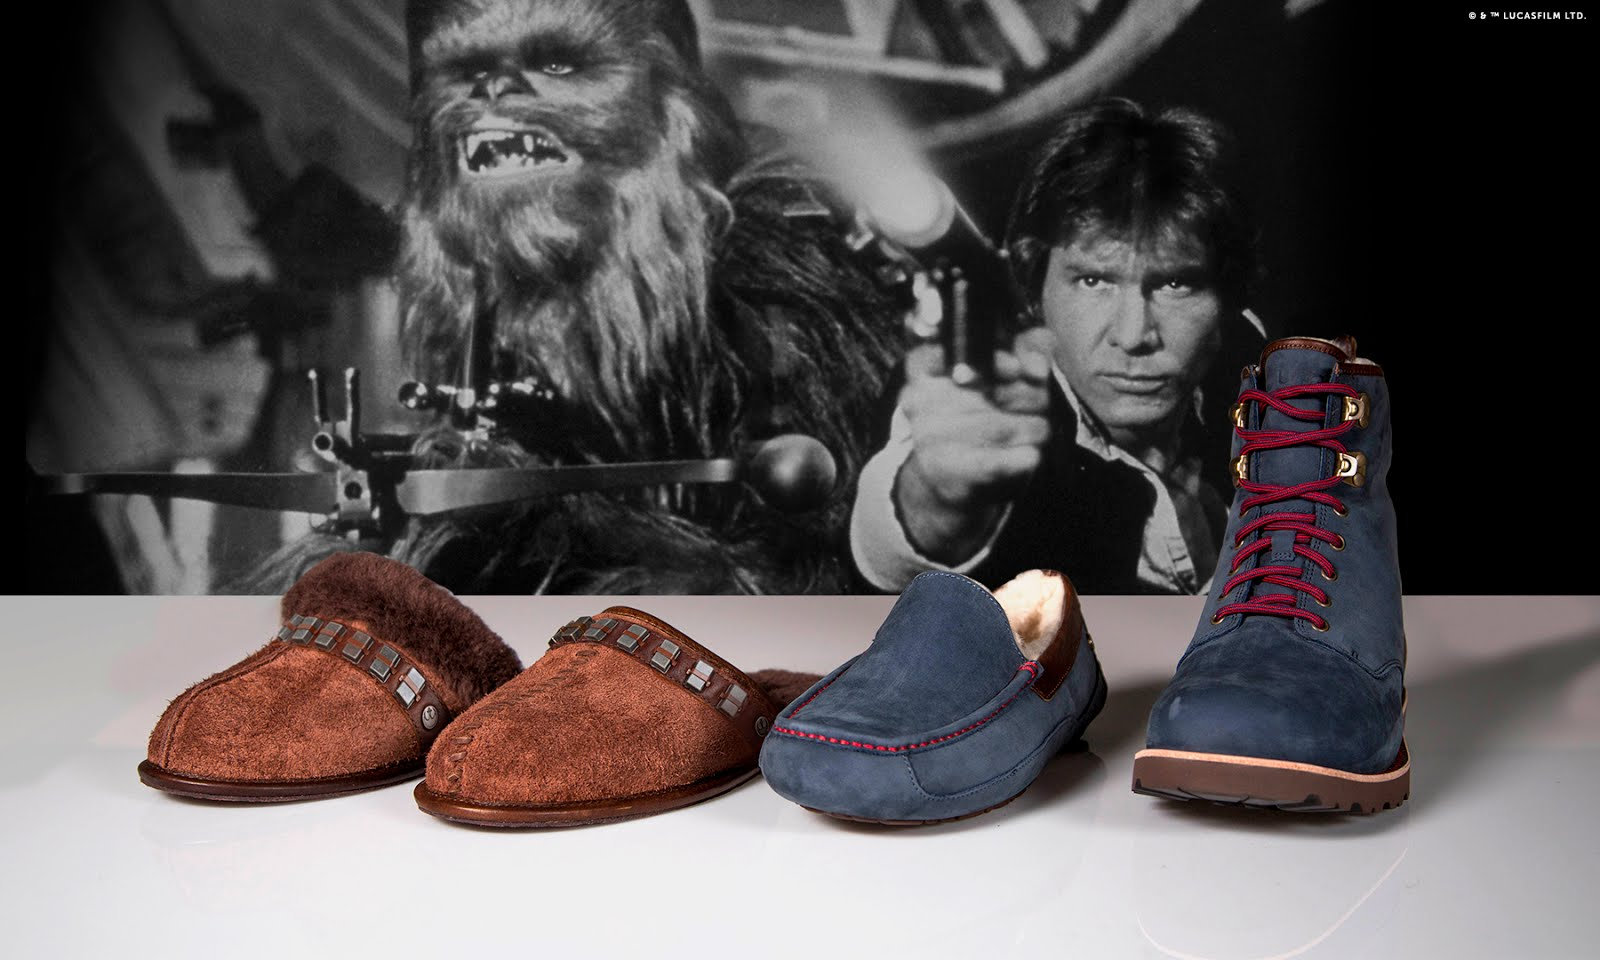 d3079384f65 UGG Launches Star Wars Hero Collection   hkblogger